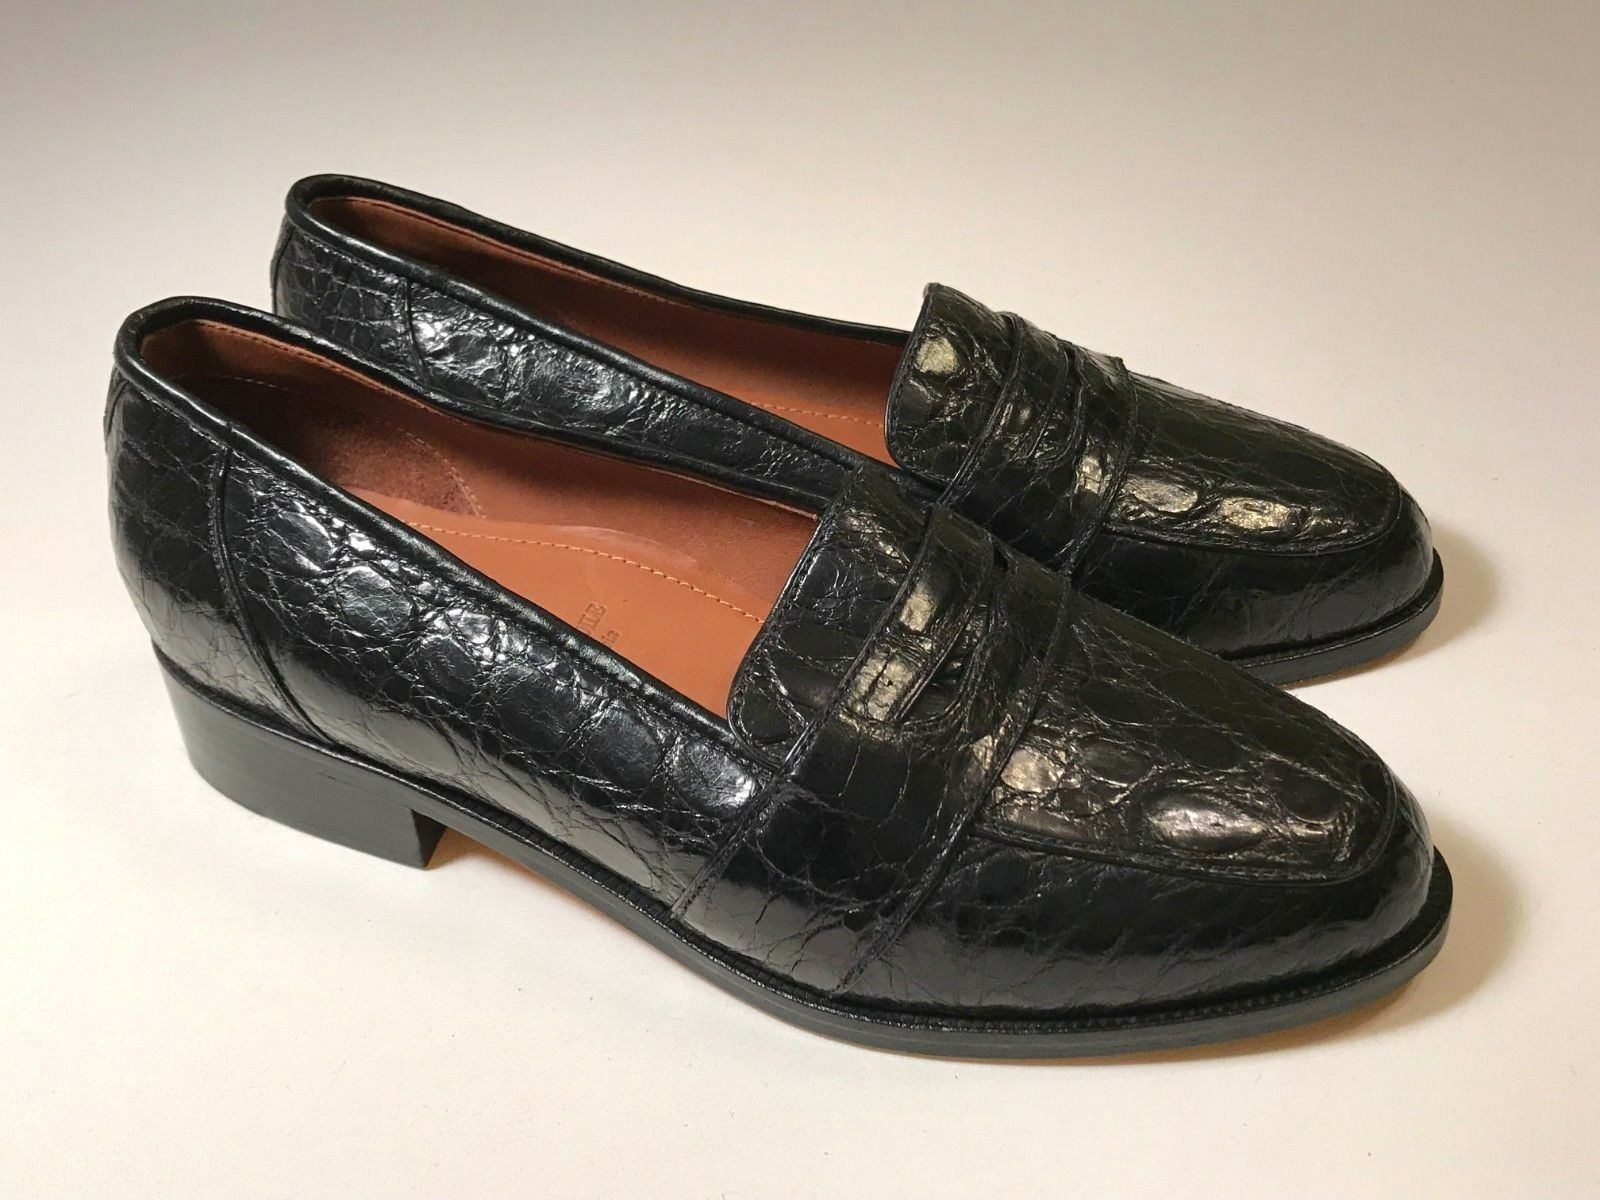 B D Jeffries Jeffries Jeffries Black Genuine Crocodile Leather Loafers Women Size 5.5, EUC ( 450) 3b93b0